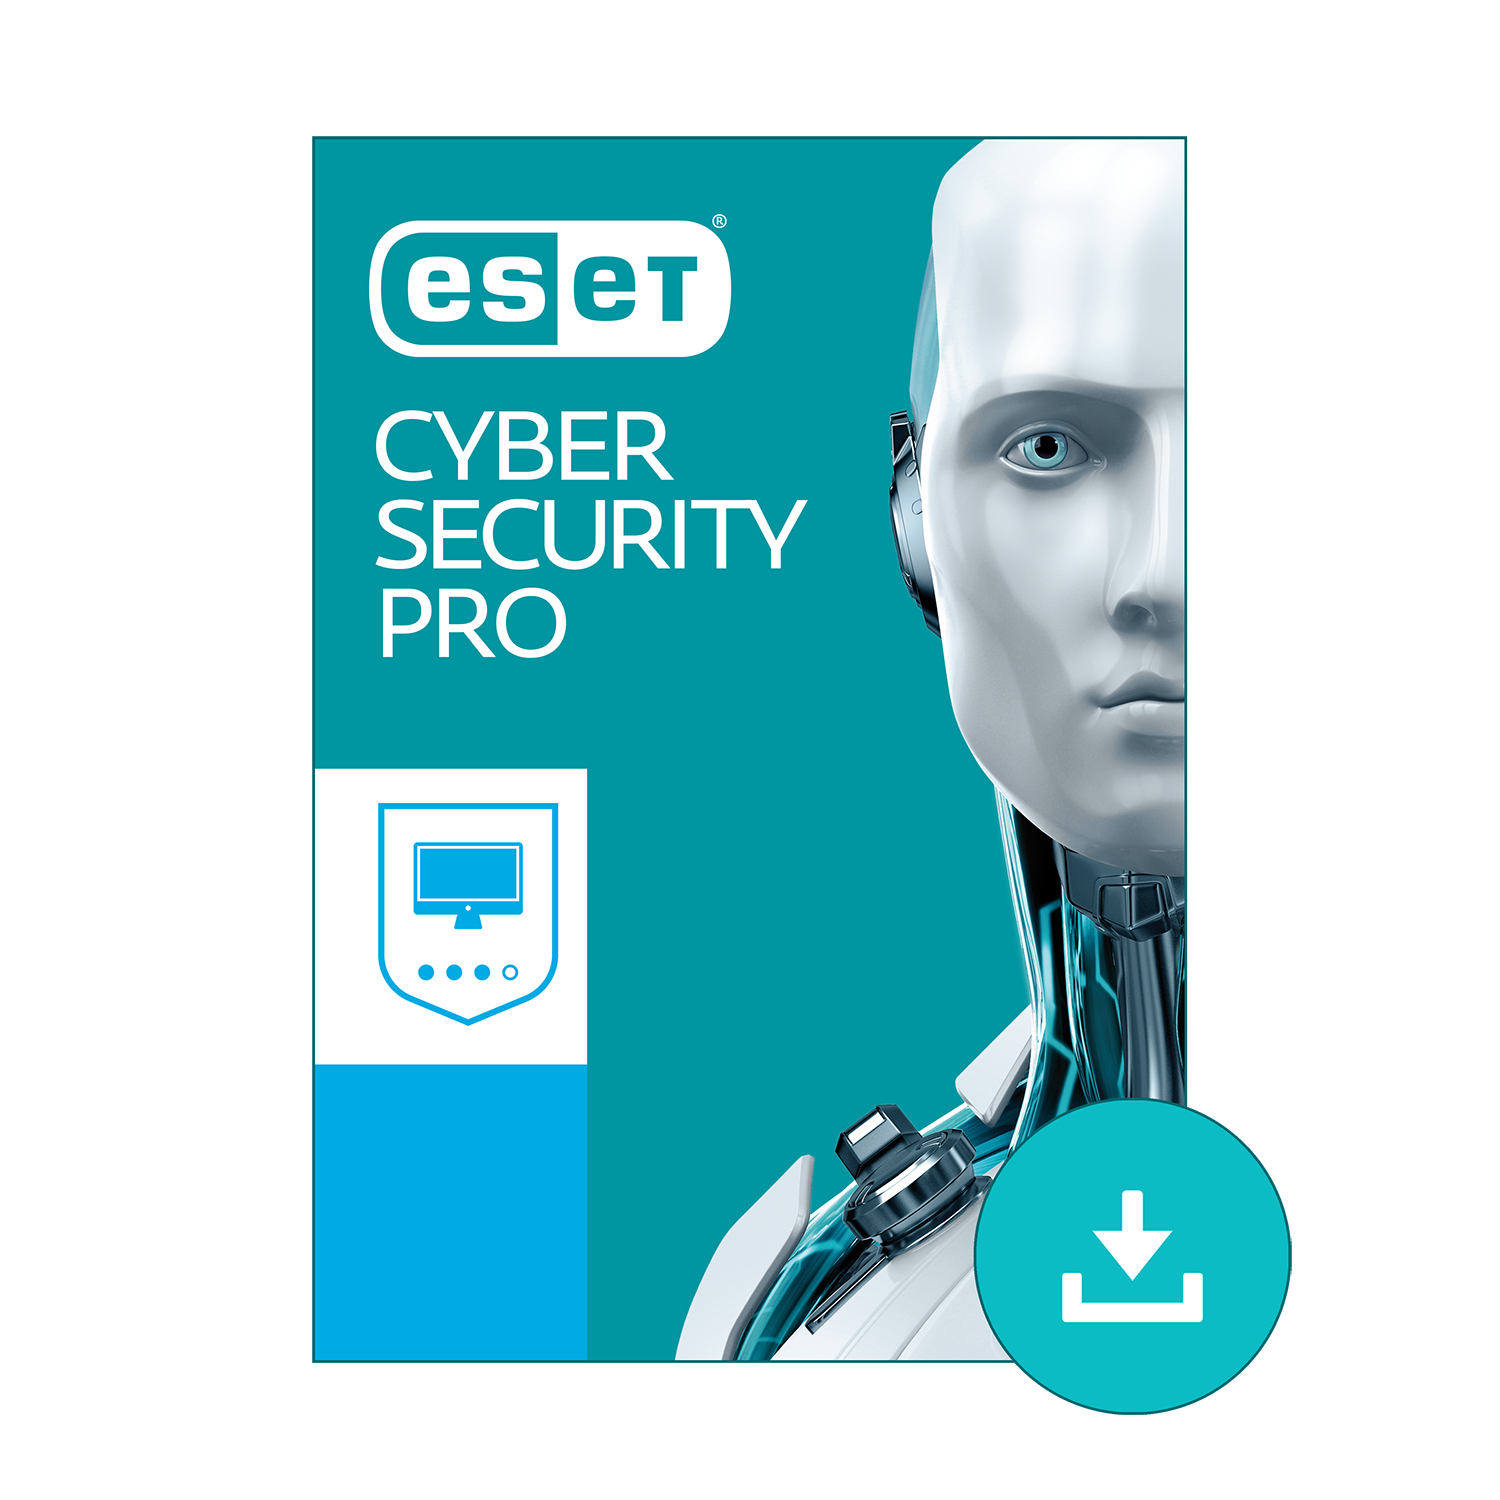 ESET Cyber Security Pro - Advanced Antivirus for Mac 2019 | 1 Device & 1 Year | Official Download with License (Best Antivirus App For Mac)